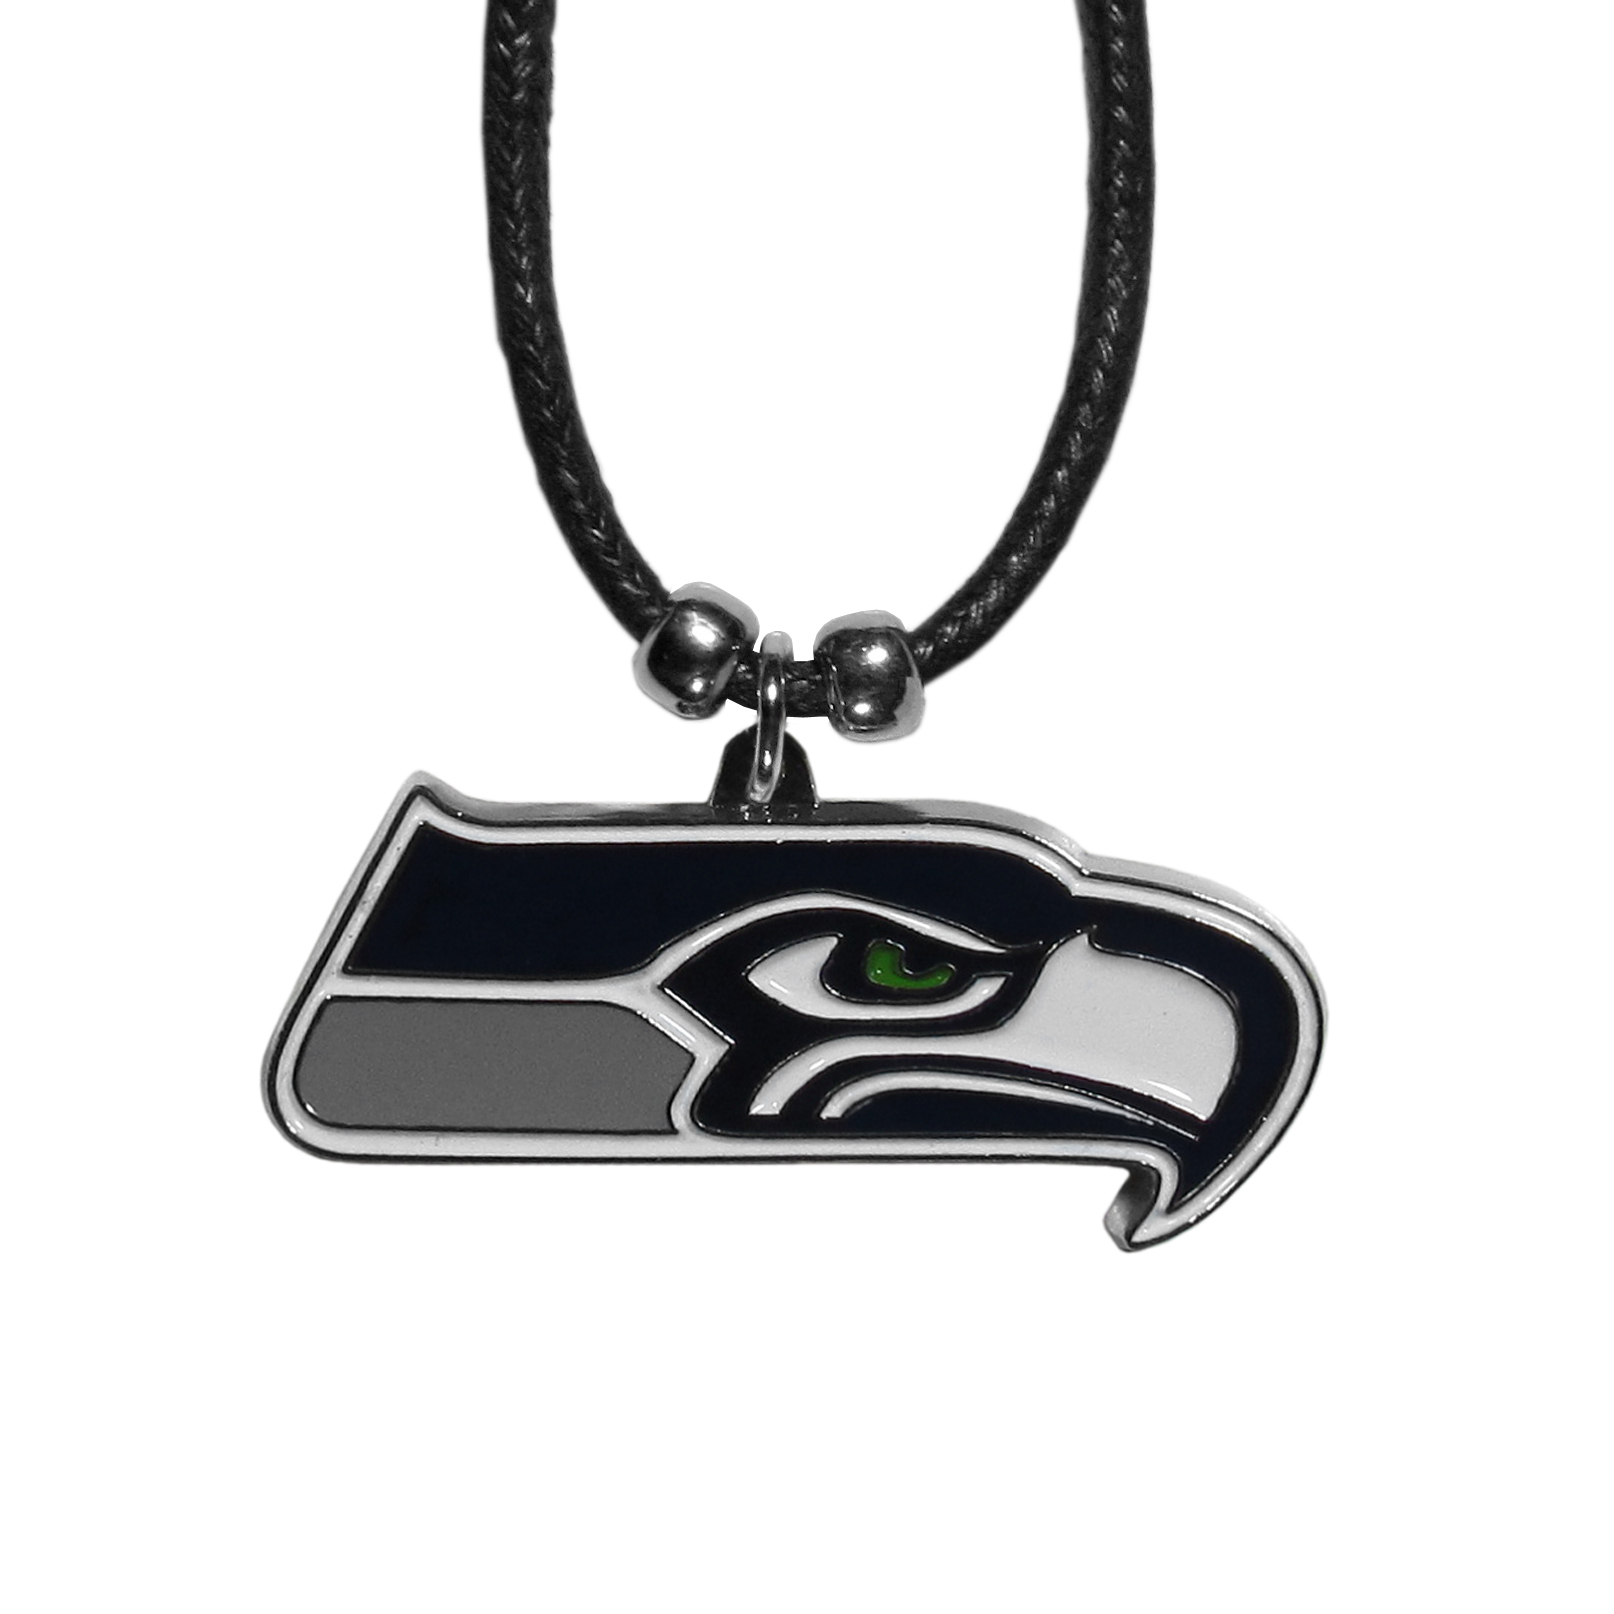 Seattle Seahawks Cord Necklace - This classic style cotton cord necklace features an extra large Seattle Seahawks pendant on a 21 inch cord.